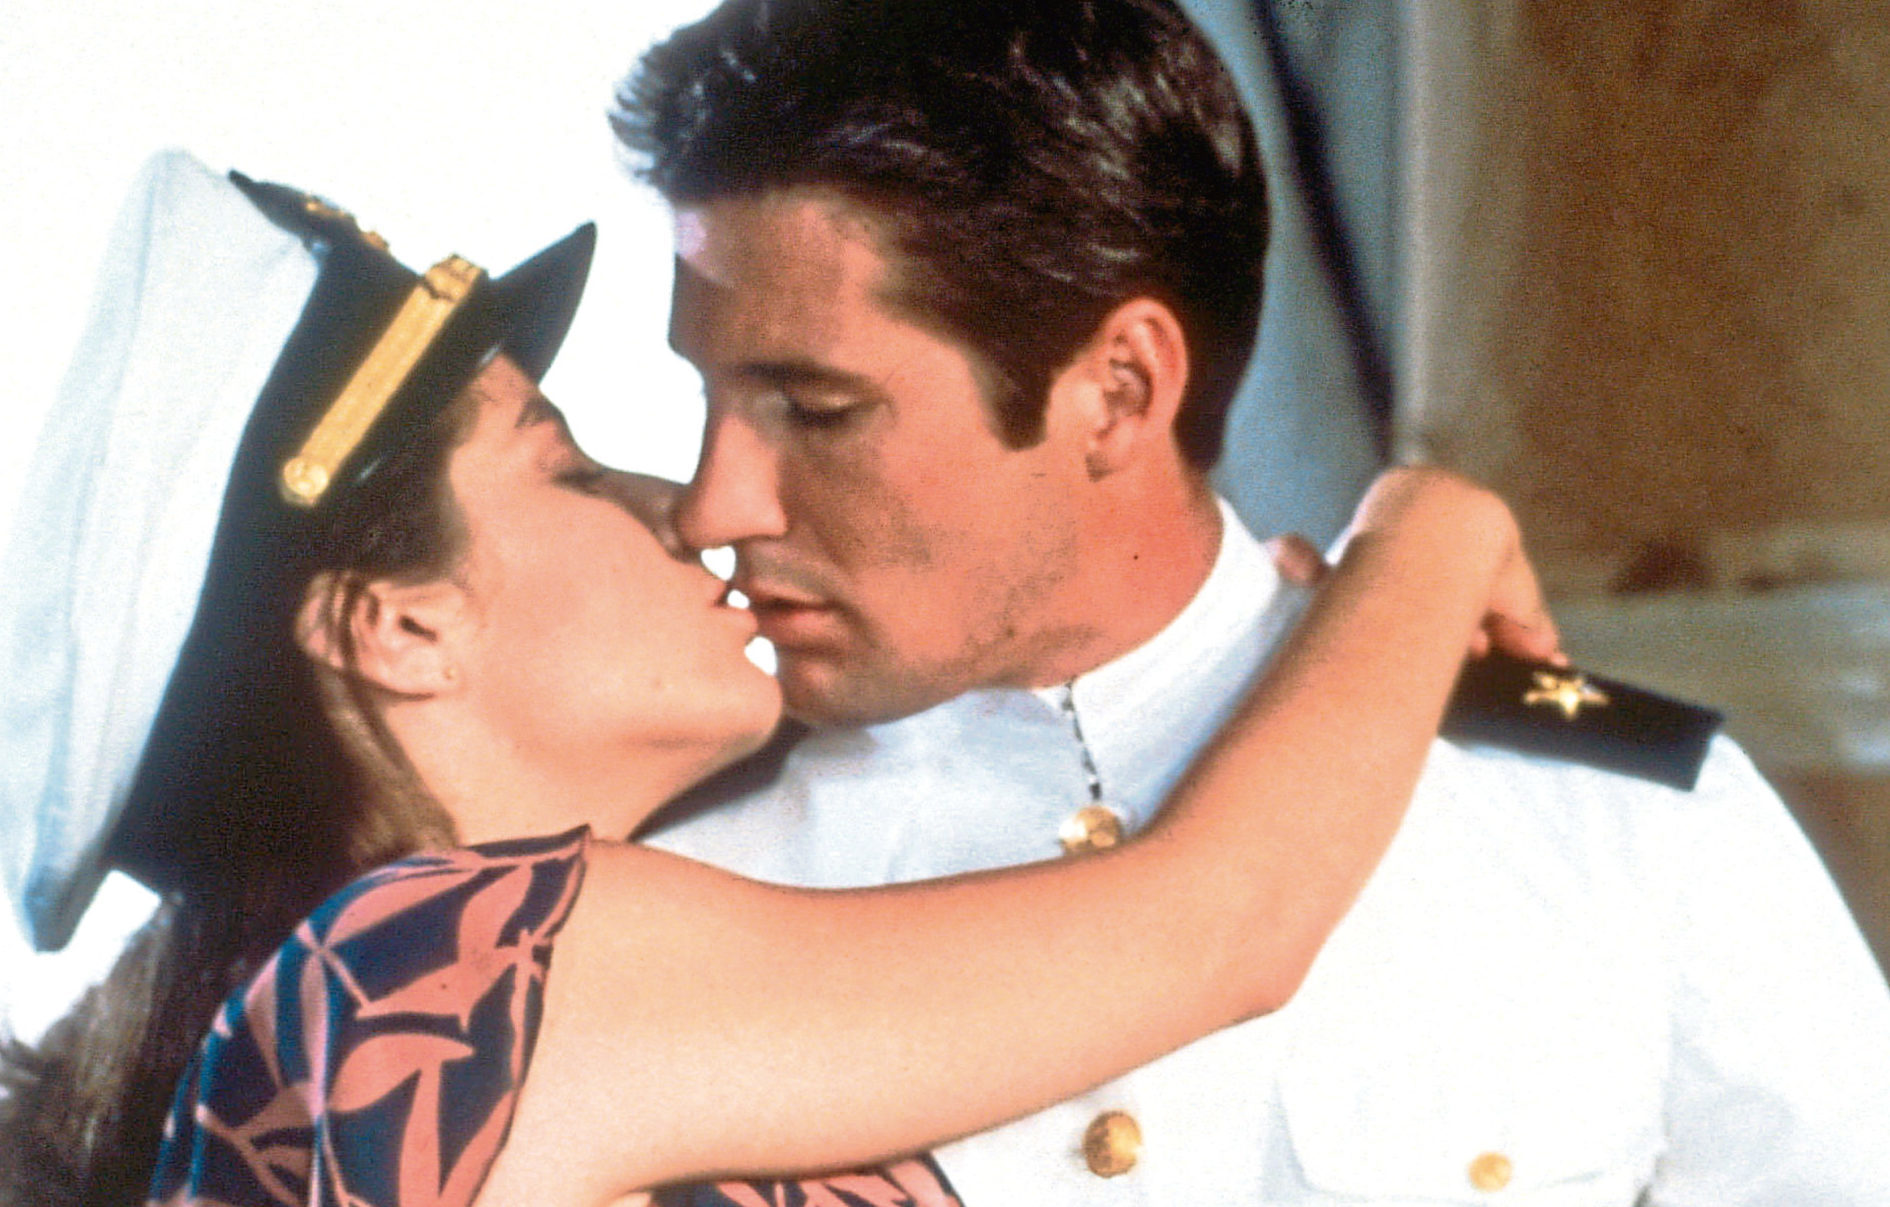 Richard Gere and Debra Winger in An Officer And A Gentleman